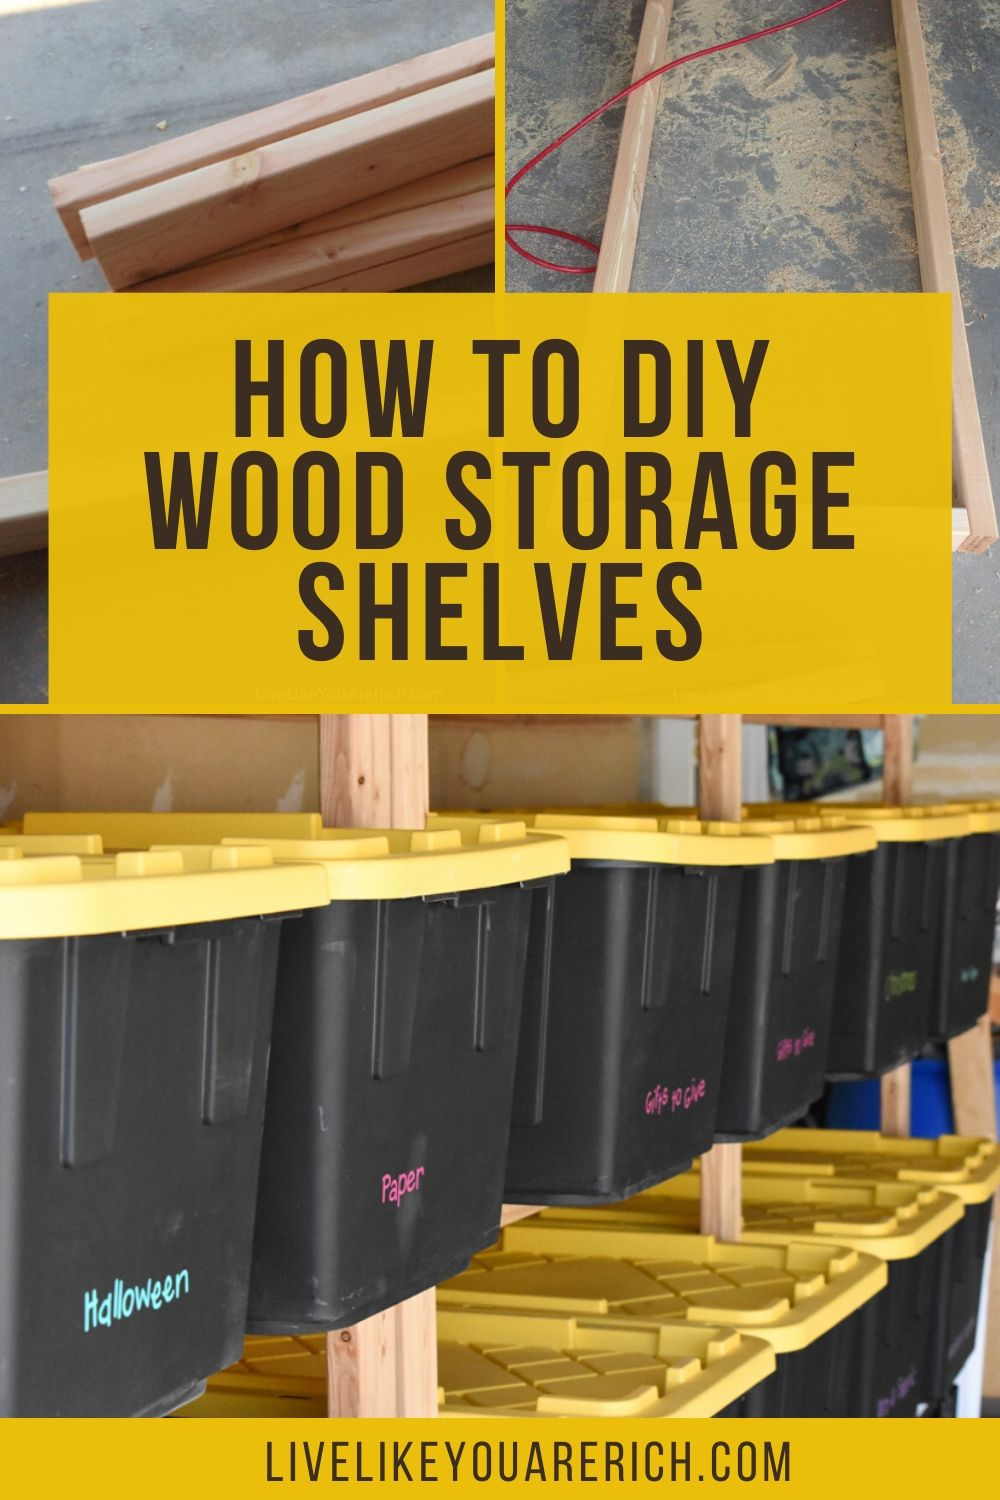 My garage had very little storage and as a result, organizing it was very difficult. I researched how to maximize the storage space in a garage and decided to put in wood storage shelves that custom fit storage bins I had.